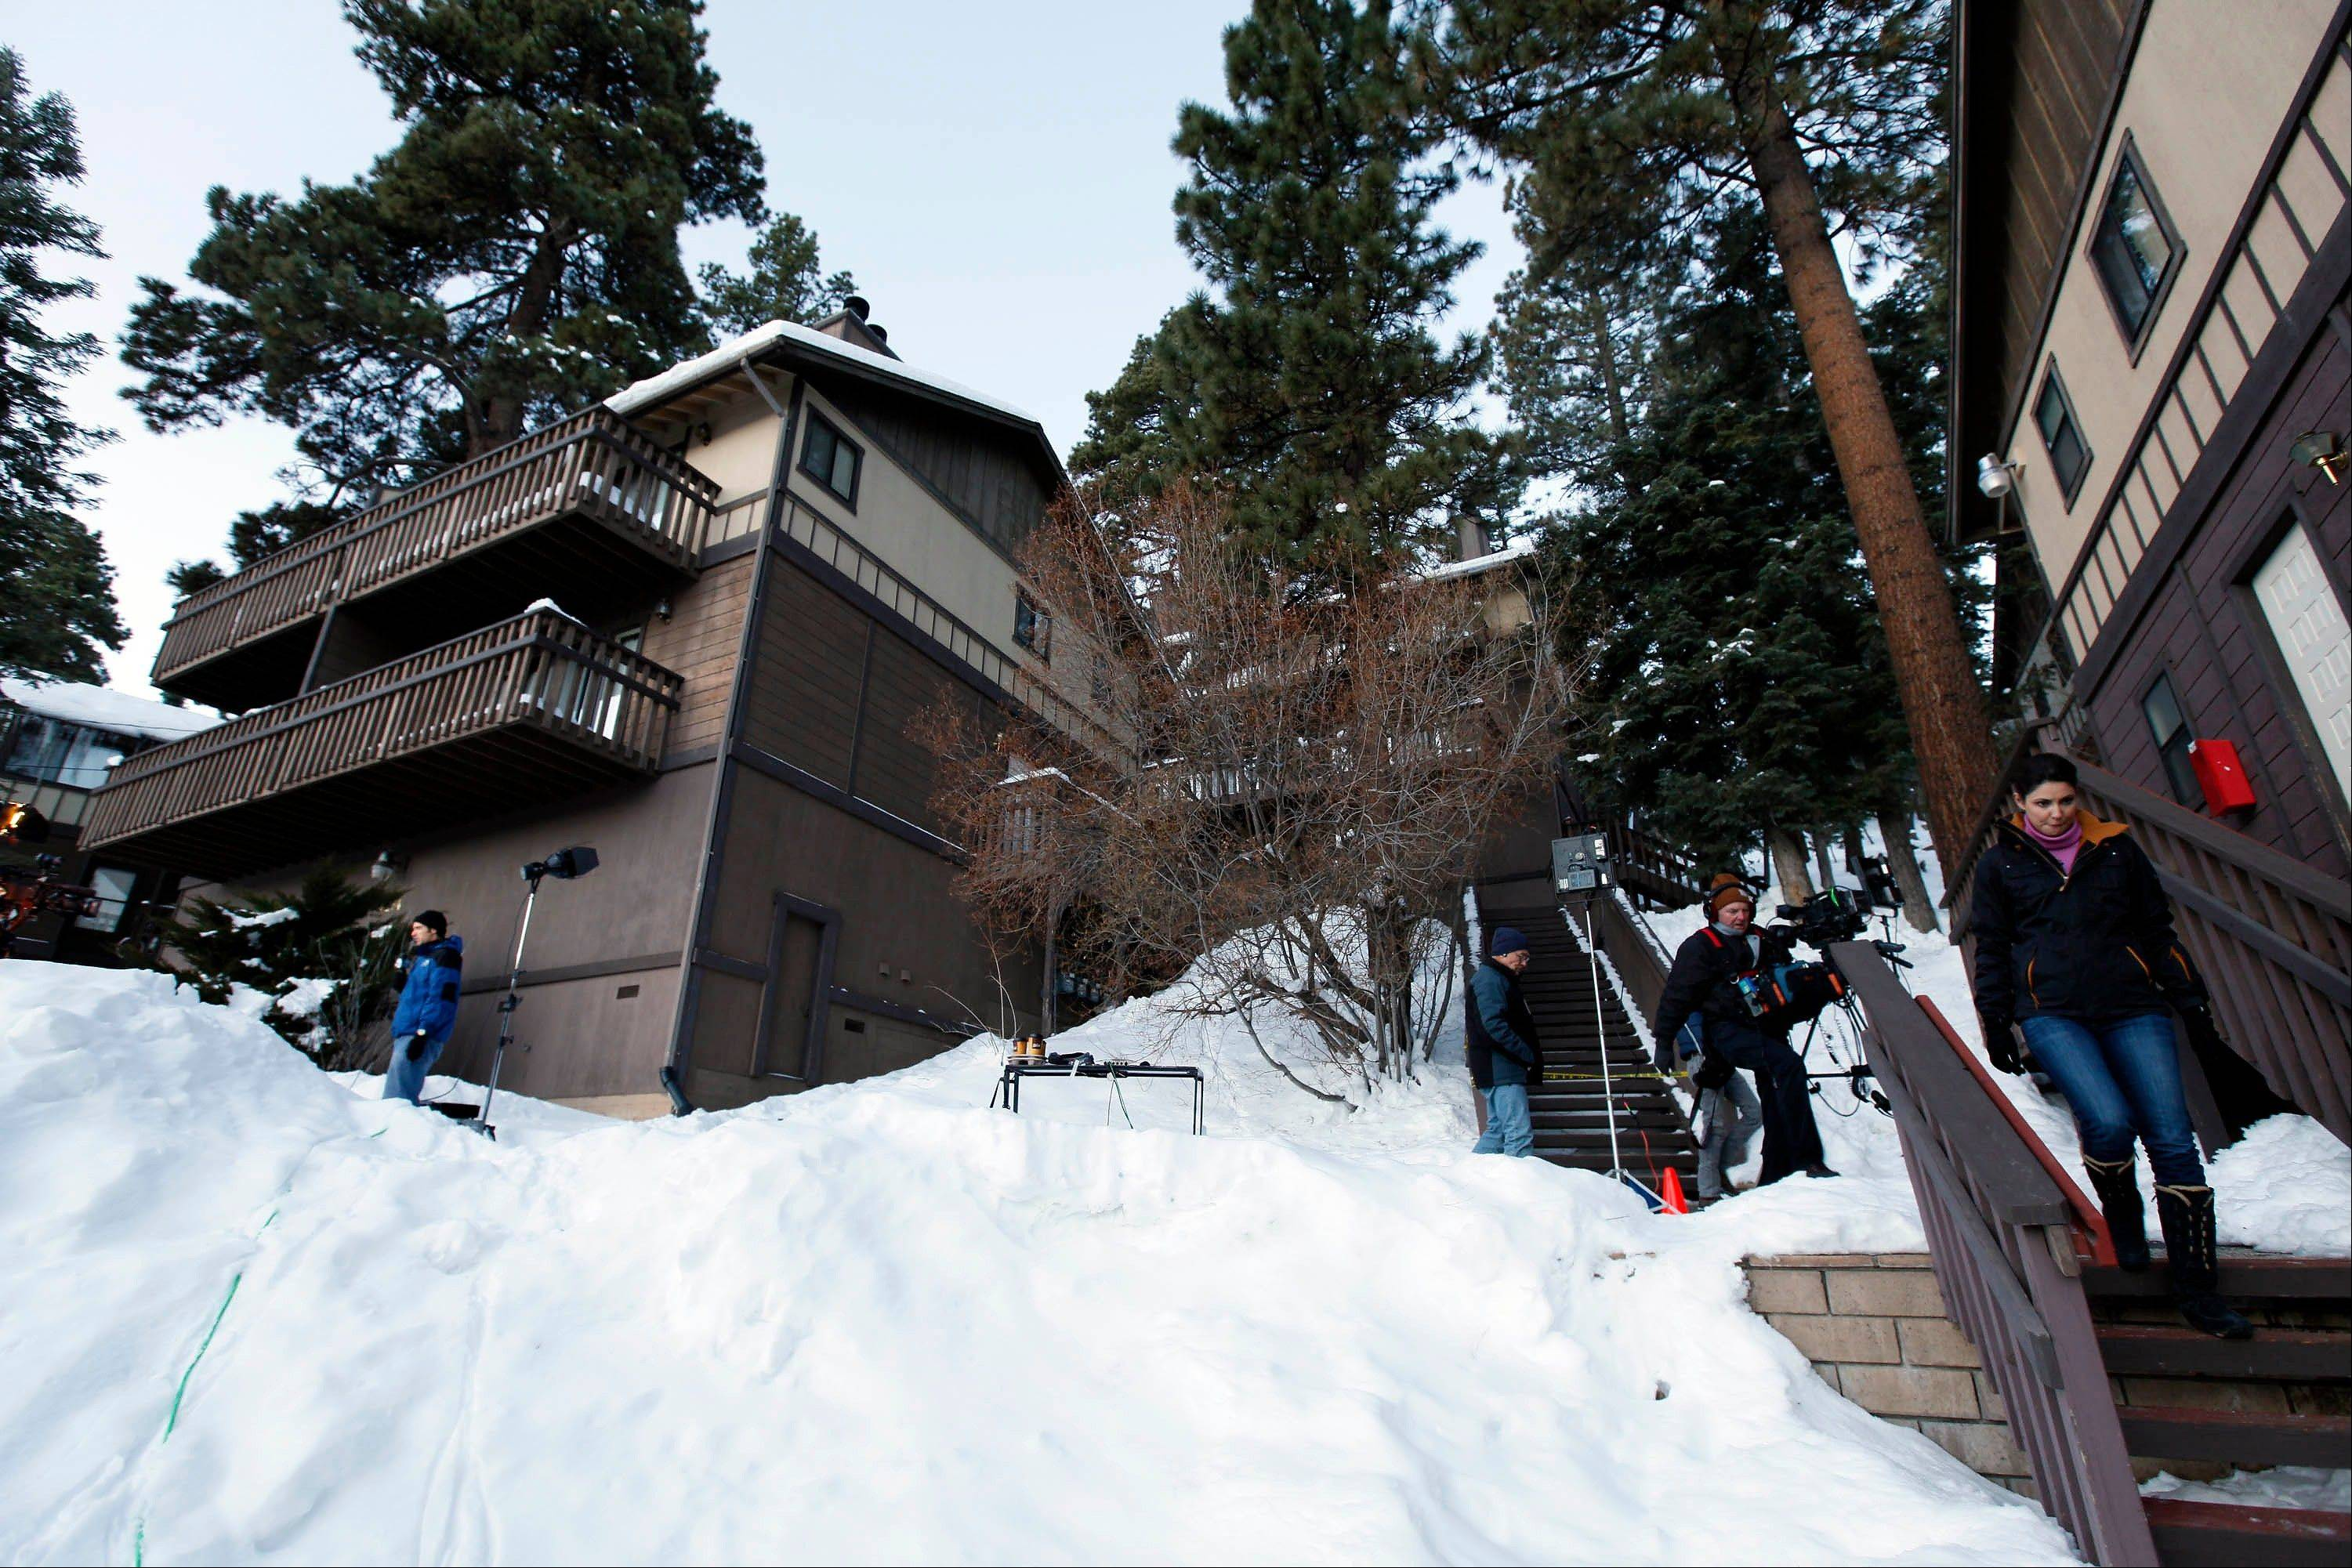 Members of the news media are shown outside a home, at left, in Big Bear, Calif., where two women were taken hostage by fugitive Christopher Dorner. Police scoured mountain peaks for days but had no idea he was hiding among them, possibly holed up in this vacation home across the street from their command post.